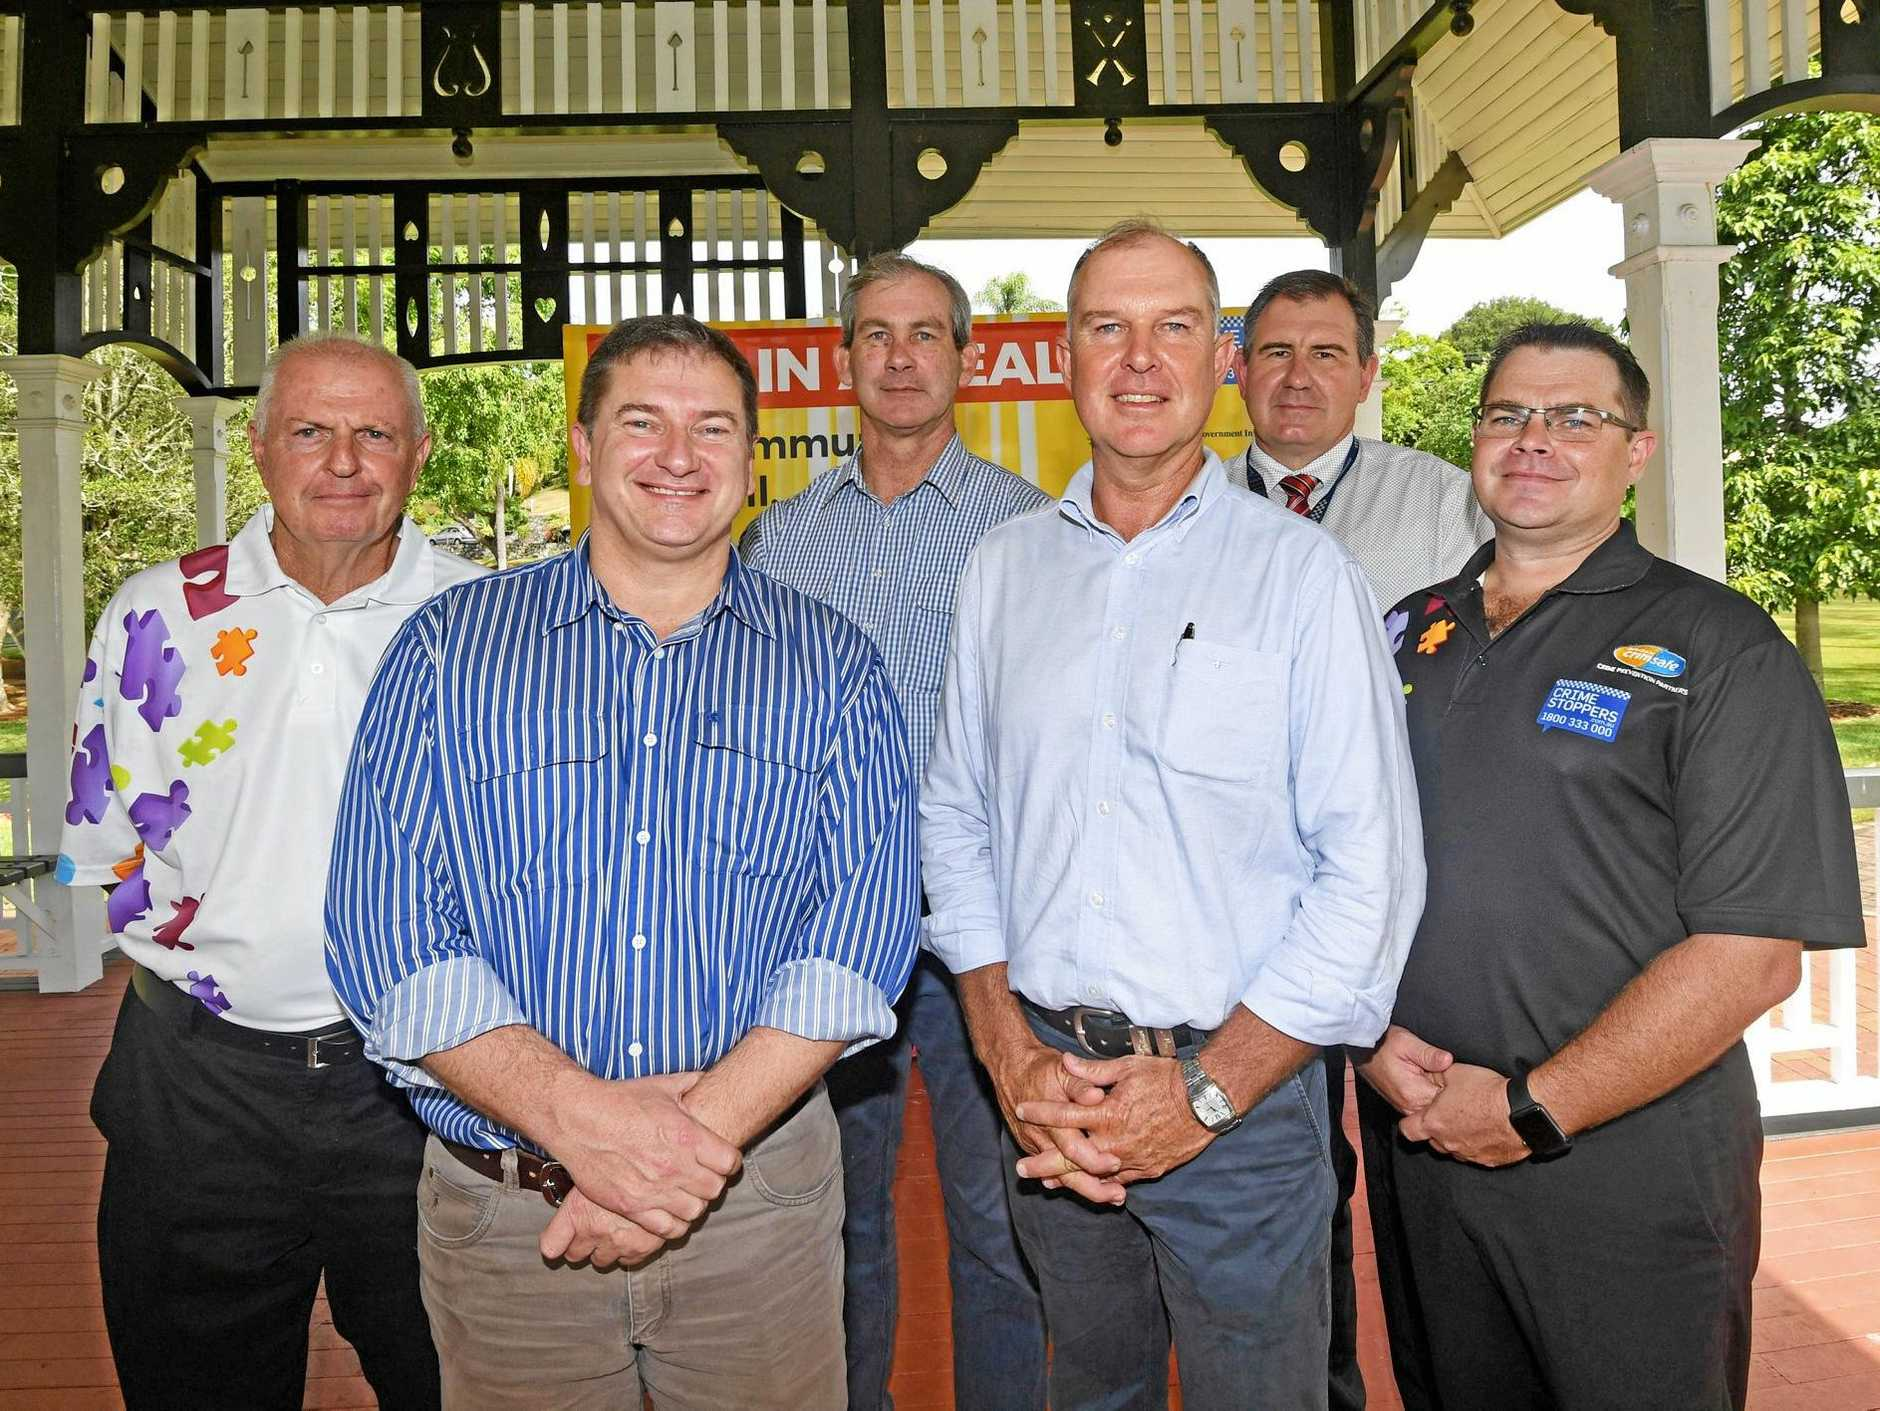 LAUNCH: (Back from left) Crime Stoppers' Ken Condon, Mayor Mick Curran, Det Sgt Rob Lowry, (front) MPs Llew O'Brien and Tony Perrett and Crime Stoppers Qld general manager Jonathon Cowley at the Gympie launch of the national Dob in a Dealer campaign yesterday.